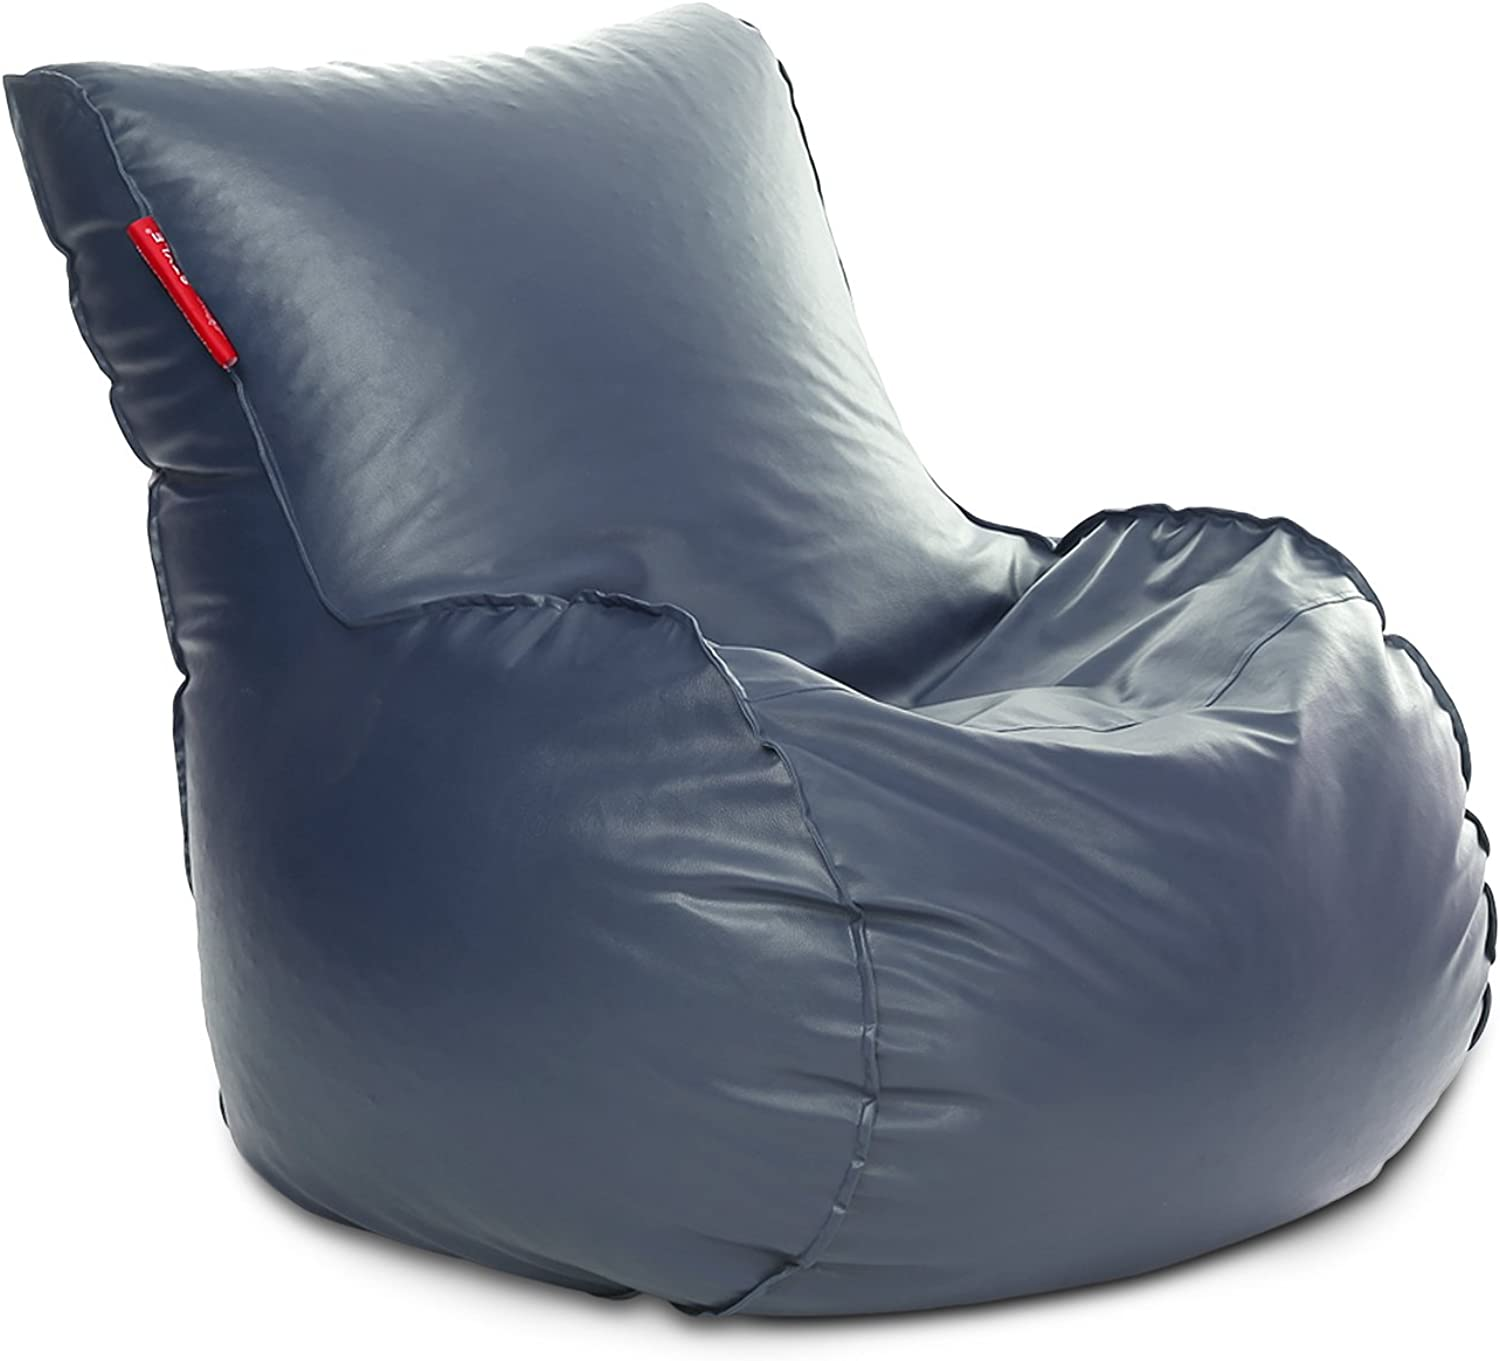 Style Homez Mambo Bean Bag XXXL Size Grey Cover Only